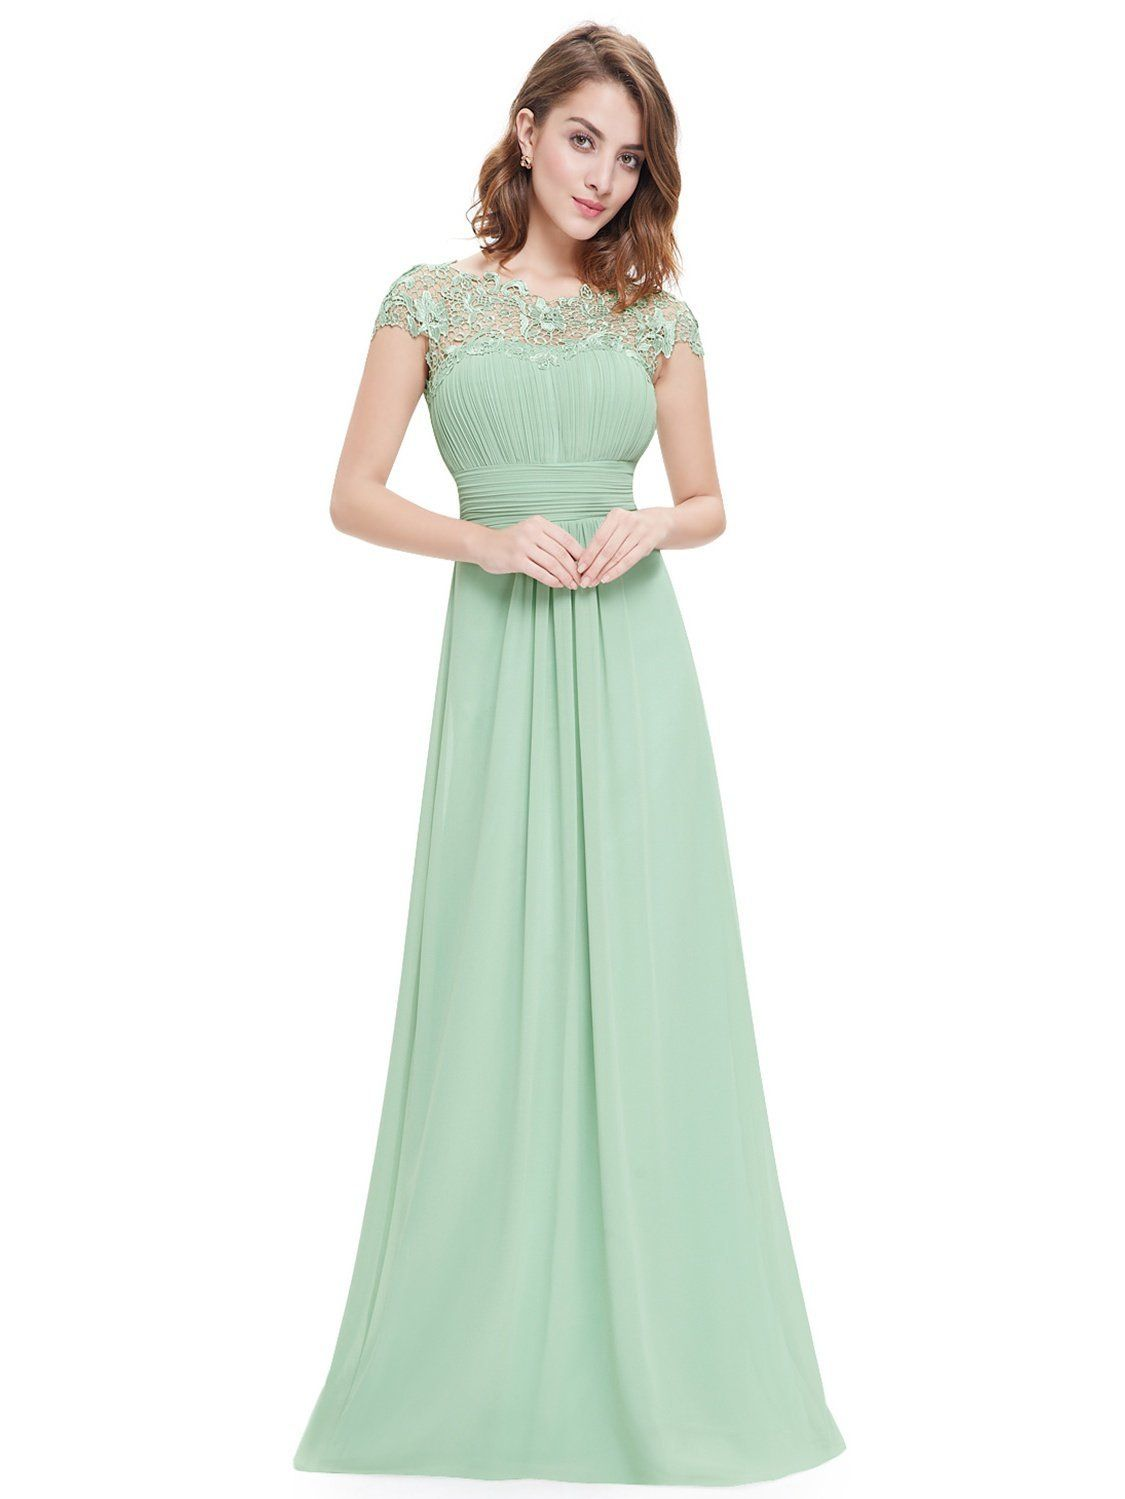 Women Lace Chiffon Formal Wedding Bridesmaid Long Evening Party Prom Gown Dress